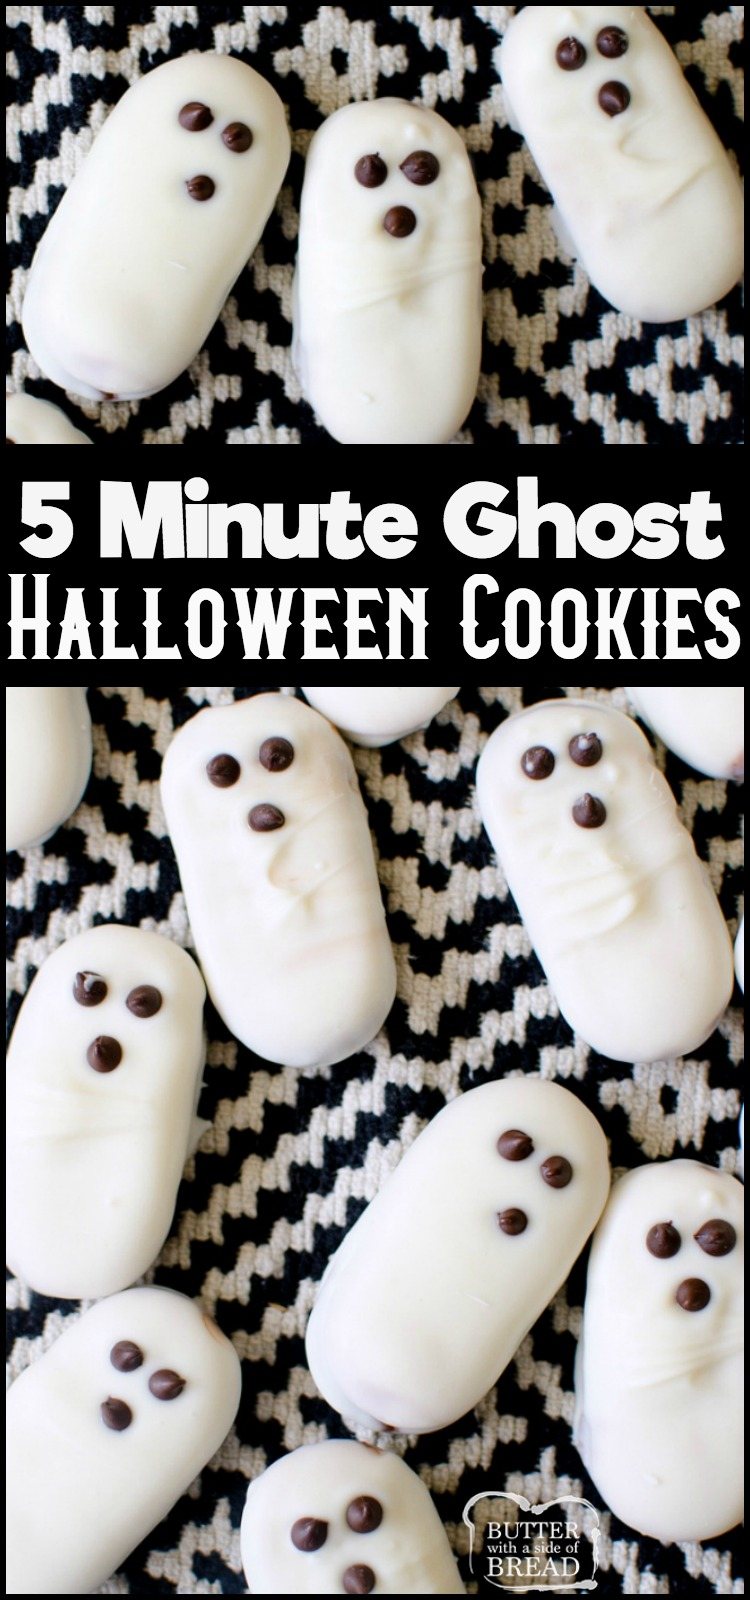 3 Ingredient Easy Ghost Halloween Cookies are a cute and festive treat! Made in minutes & devoured in seconds, these easy Halloween cookies are a hit! Simple, 5 minute recipe with only 3 ingredients! #halloween #ghosts #cookies #recipe #party #food from BUTTER WITH A SIDE OF BREAD